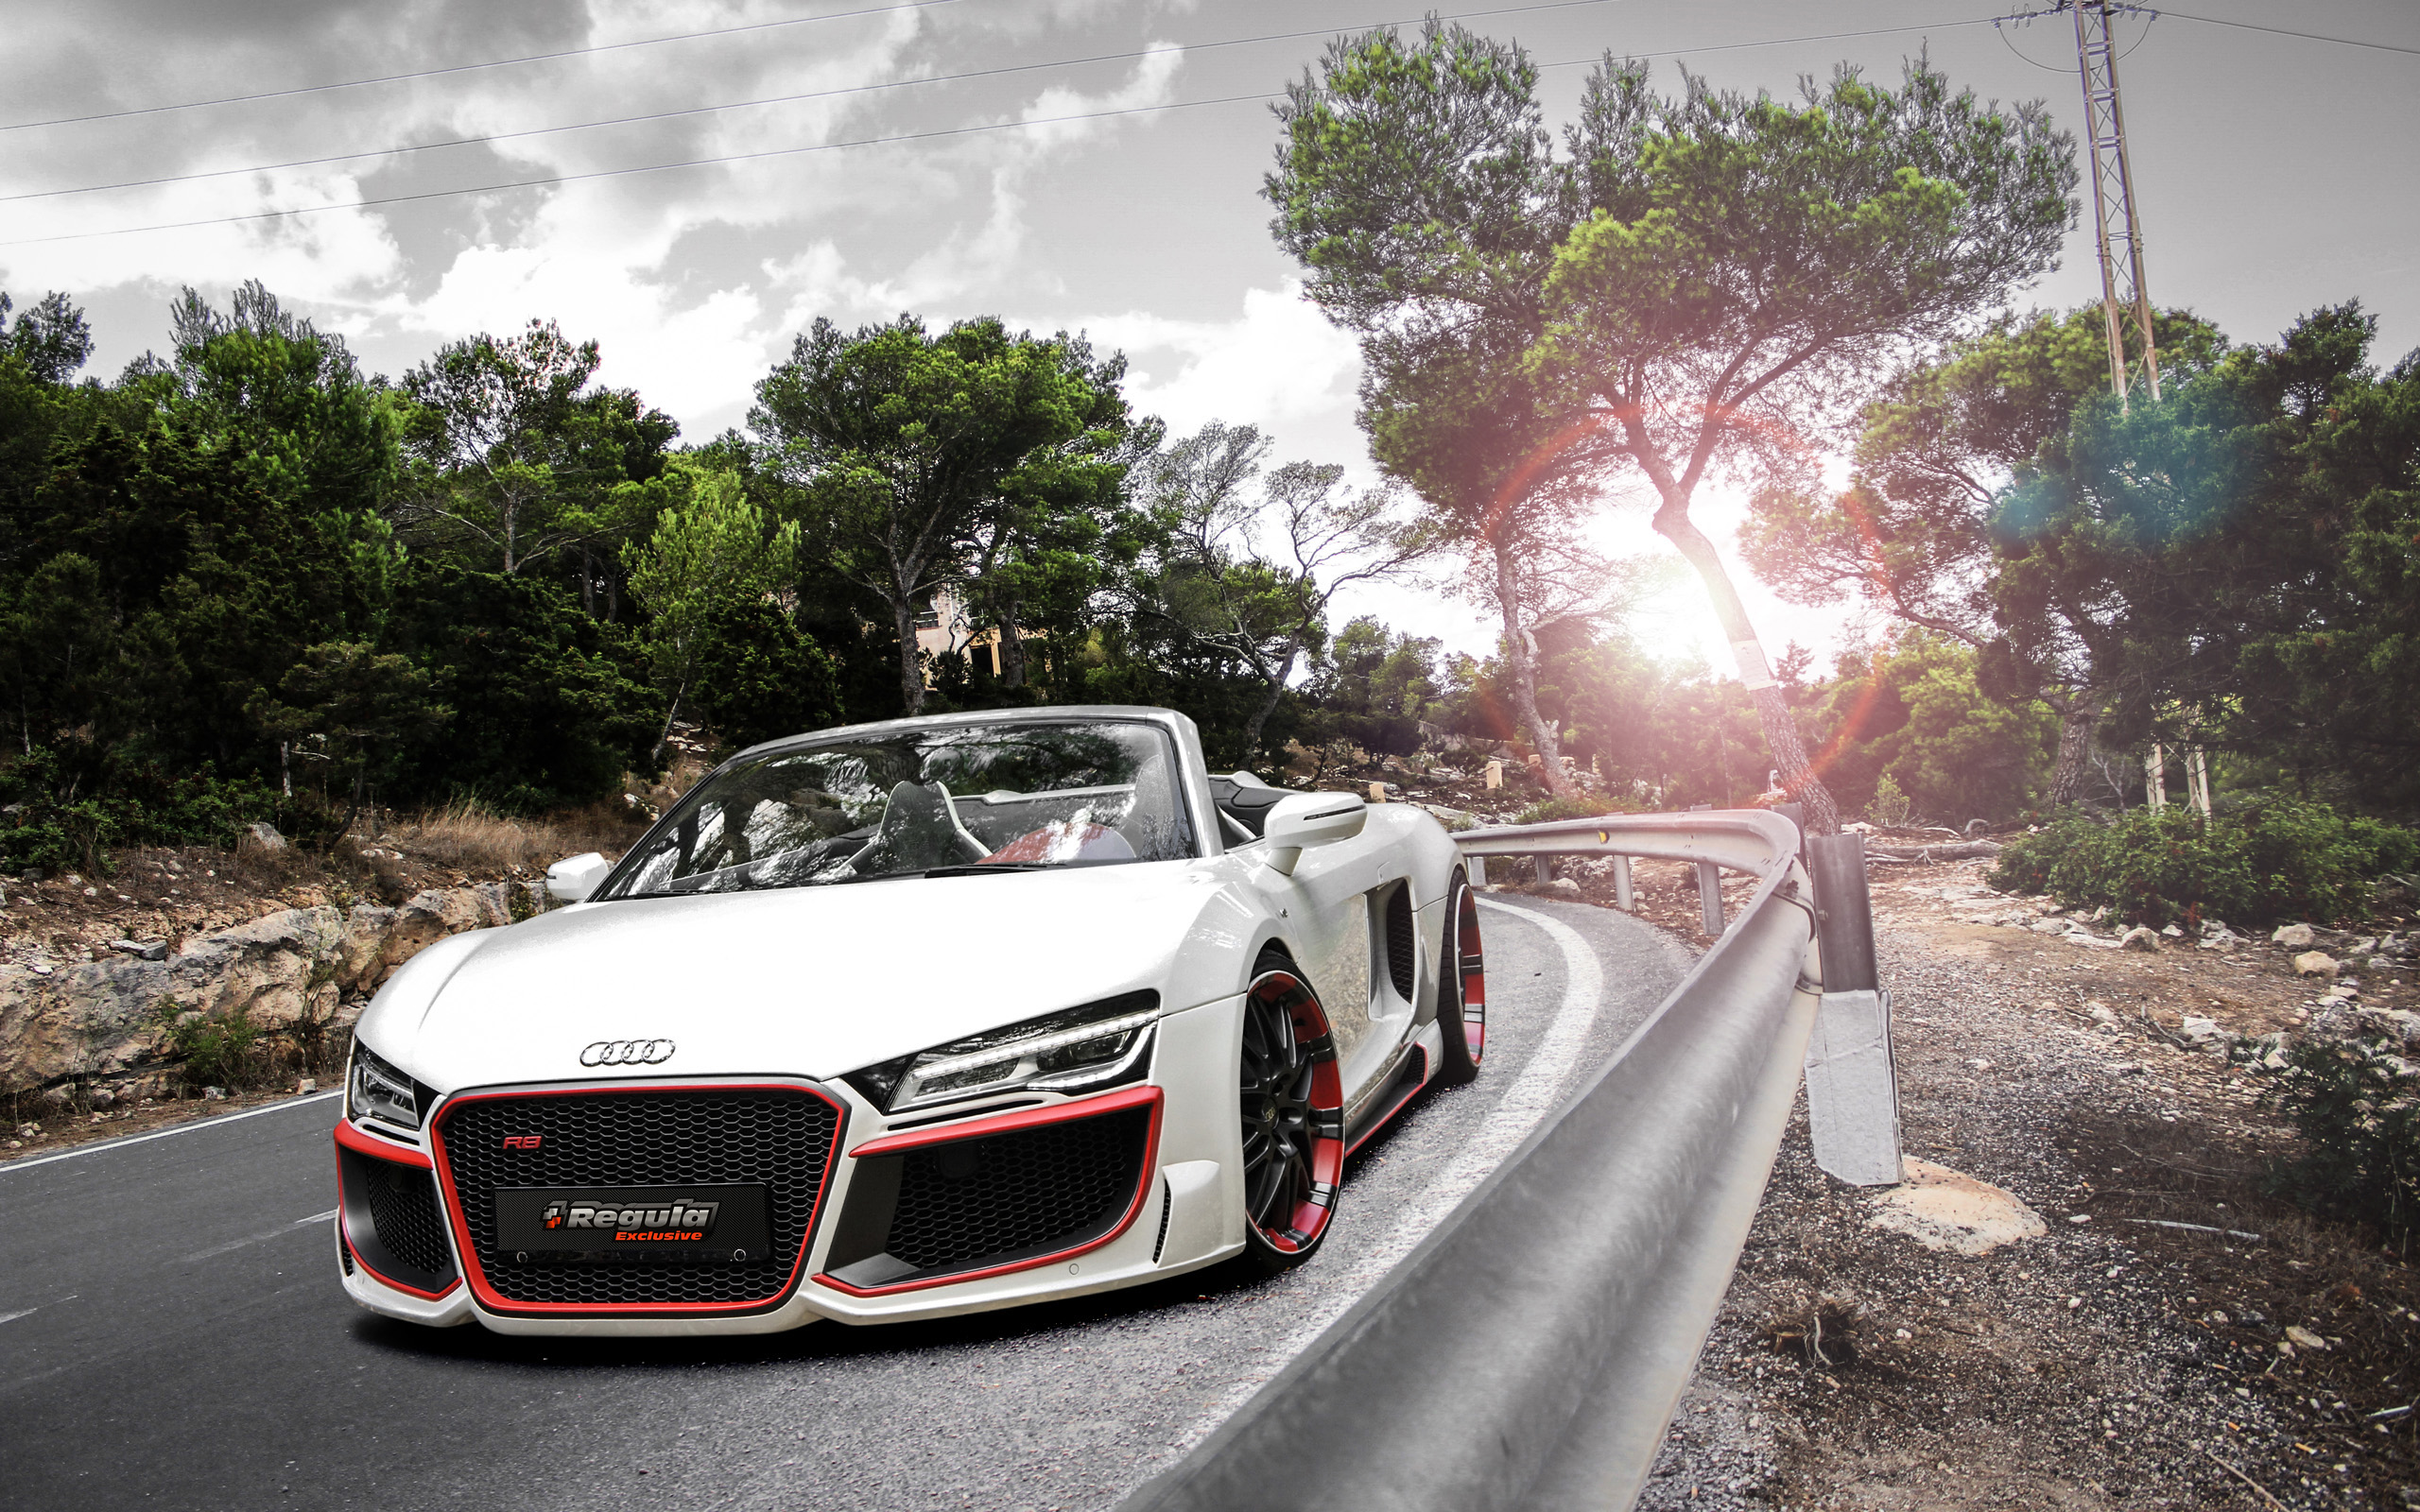 2014 Audi R8 V10 Spyder Regula Tuning hdwallpapersin 2560x1600